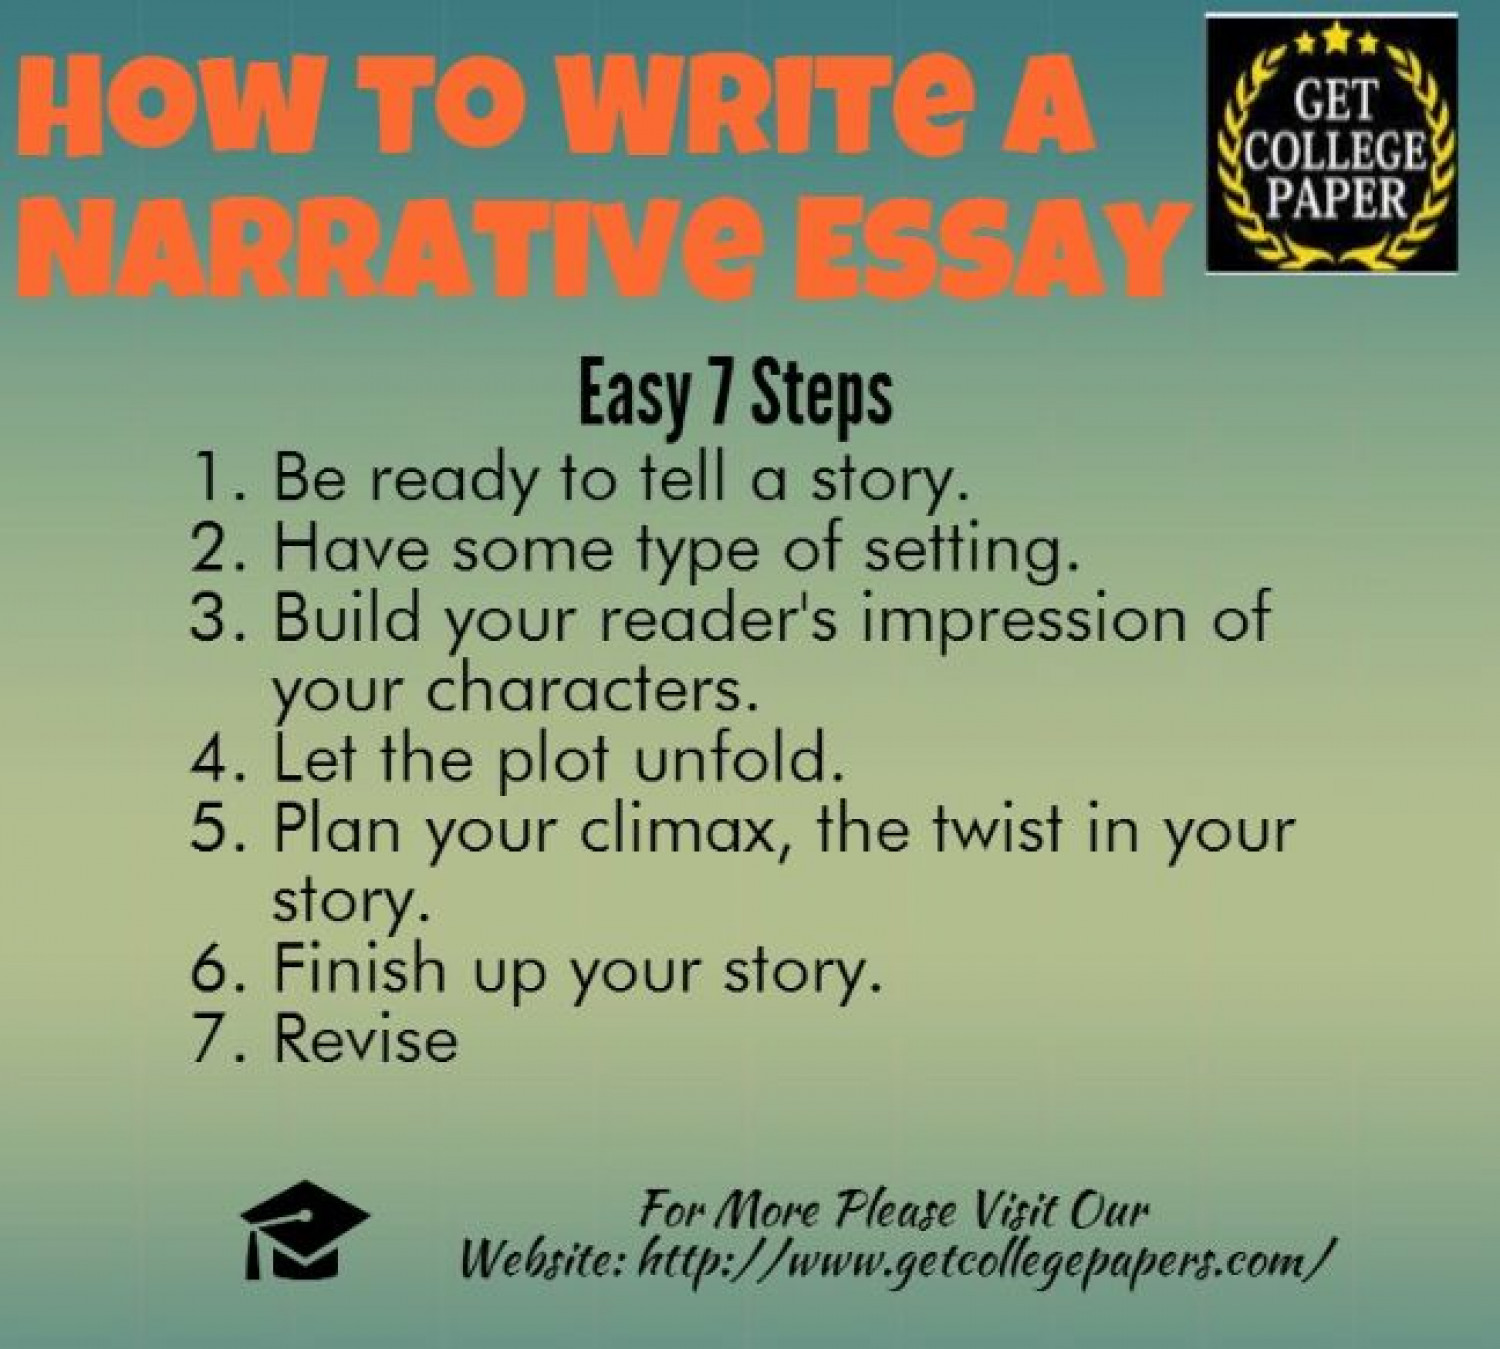 how do i write narrative essay How to write narrative essay when you are writing a narrative essay, you should keep to the given topic and try to develop it to the fullest extent.